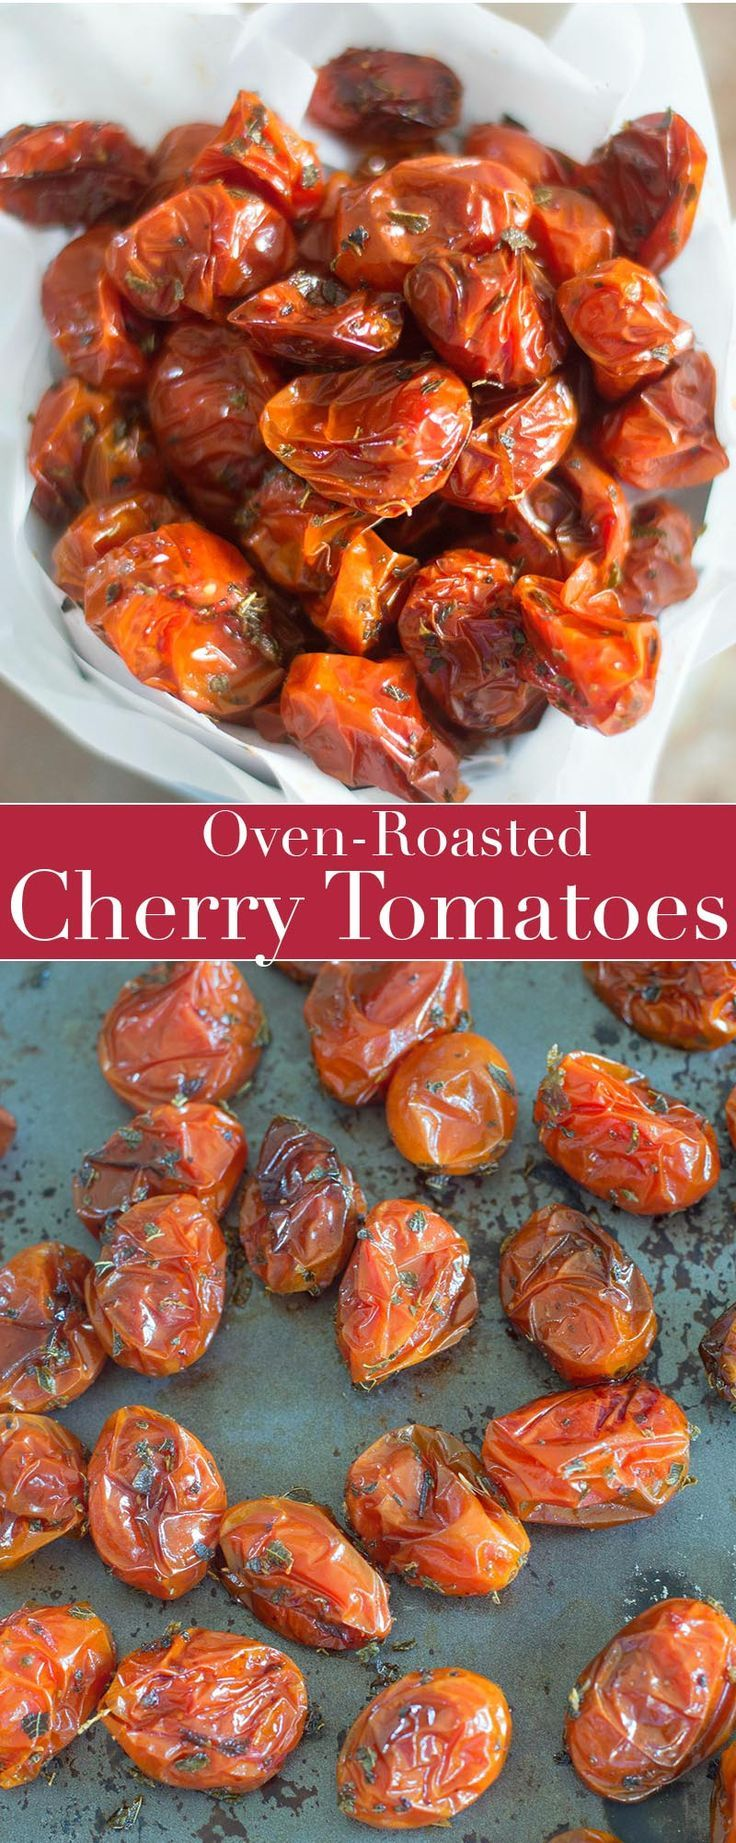 Quick and easy oven roasted cherry tomatoes. Use them in salads, pasta or sandwiches. Add herbs and roast to bring out the best in these cherry tomatoes